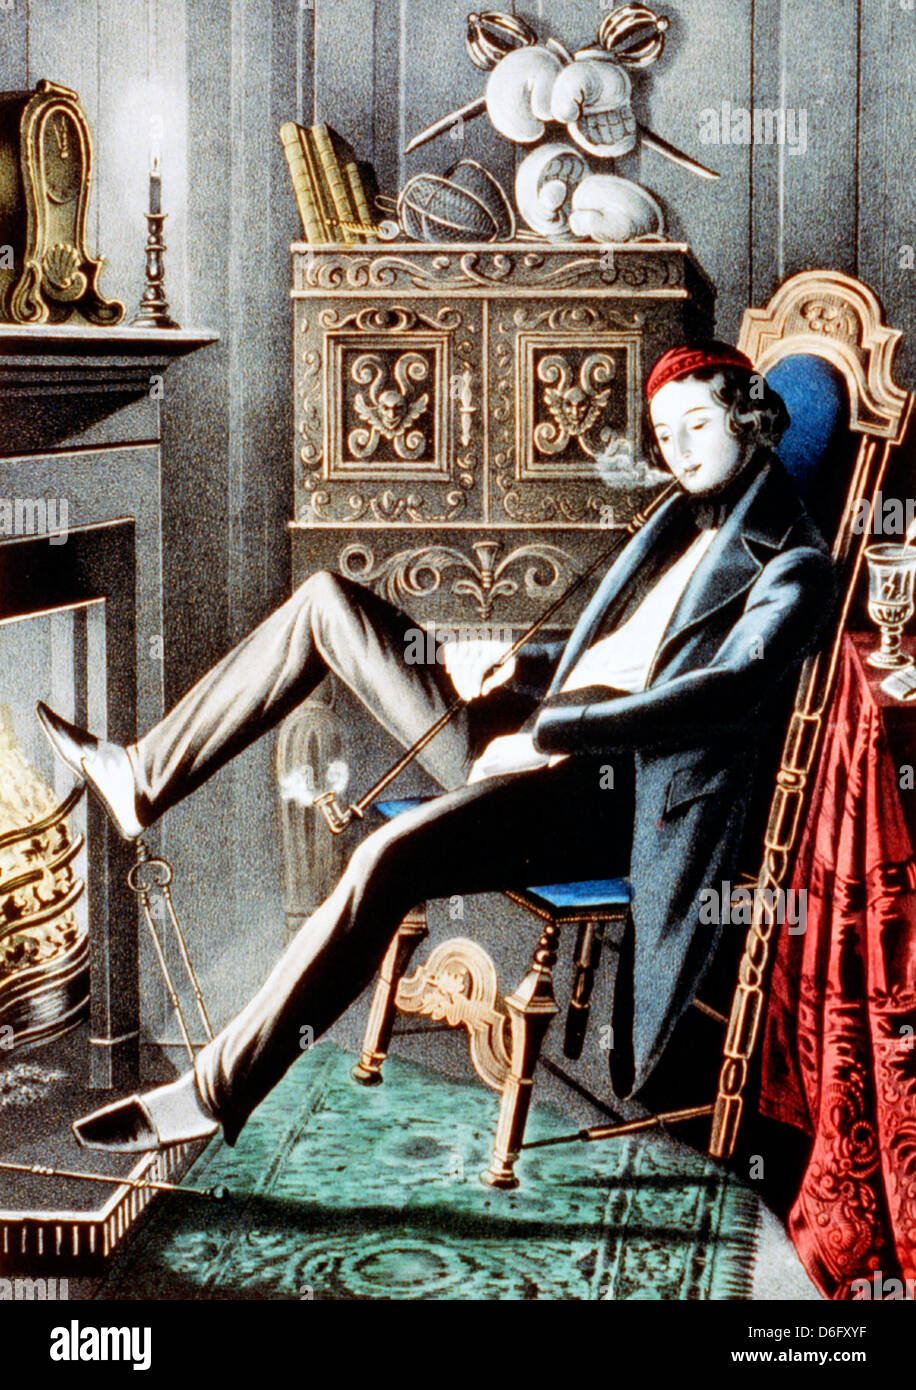 Hand colored lithograph showing a single man smoking a pipe - Stock Image